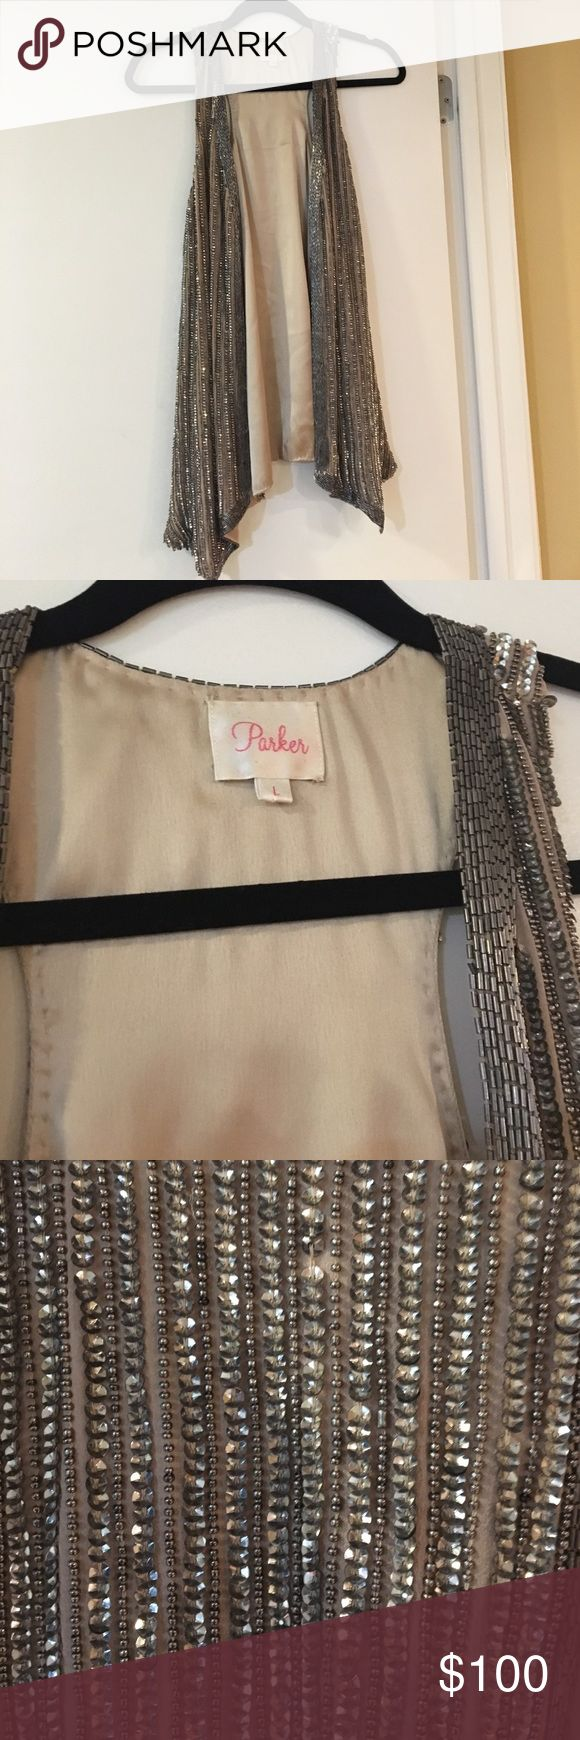 Parker NY Sequin Vest This Parker NY vest can be worn either open or closed. There are hooks inside that allow you to close the vest completely to wear it as a top! Parker Jackets & Coats Vests